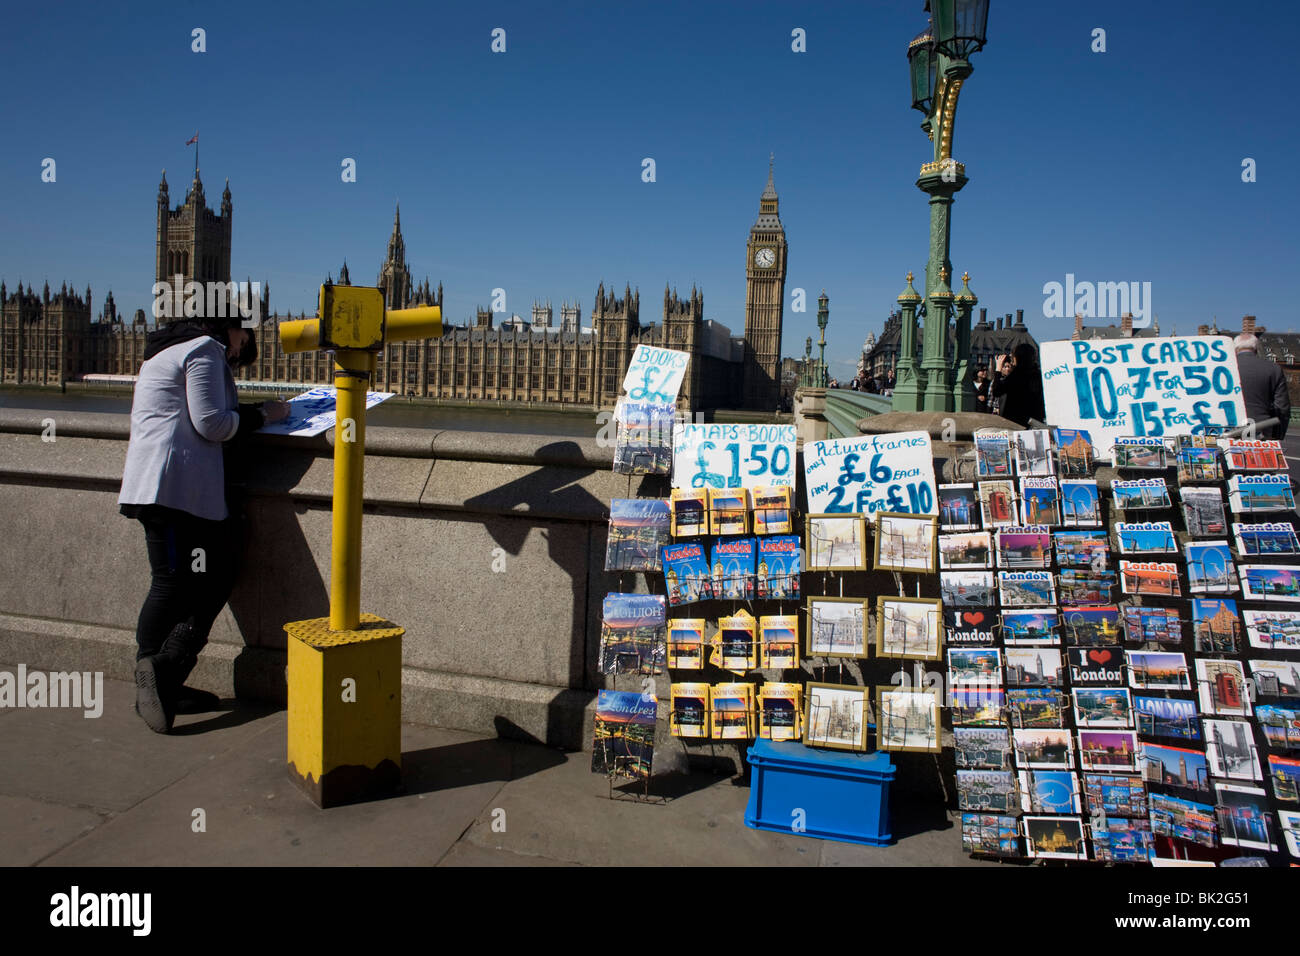 Big Ben amid the Gothic architecture of Britain's Houses of Parliament and tourist postcards displayed on the - Stock Image